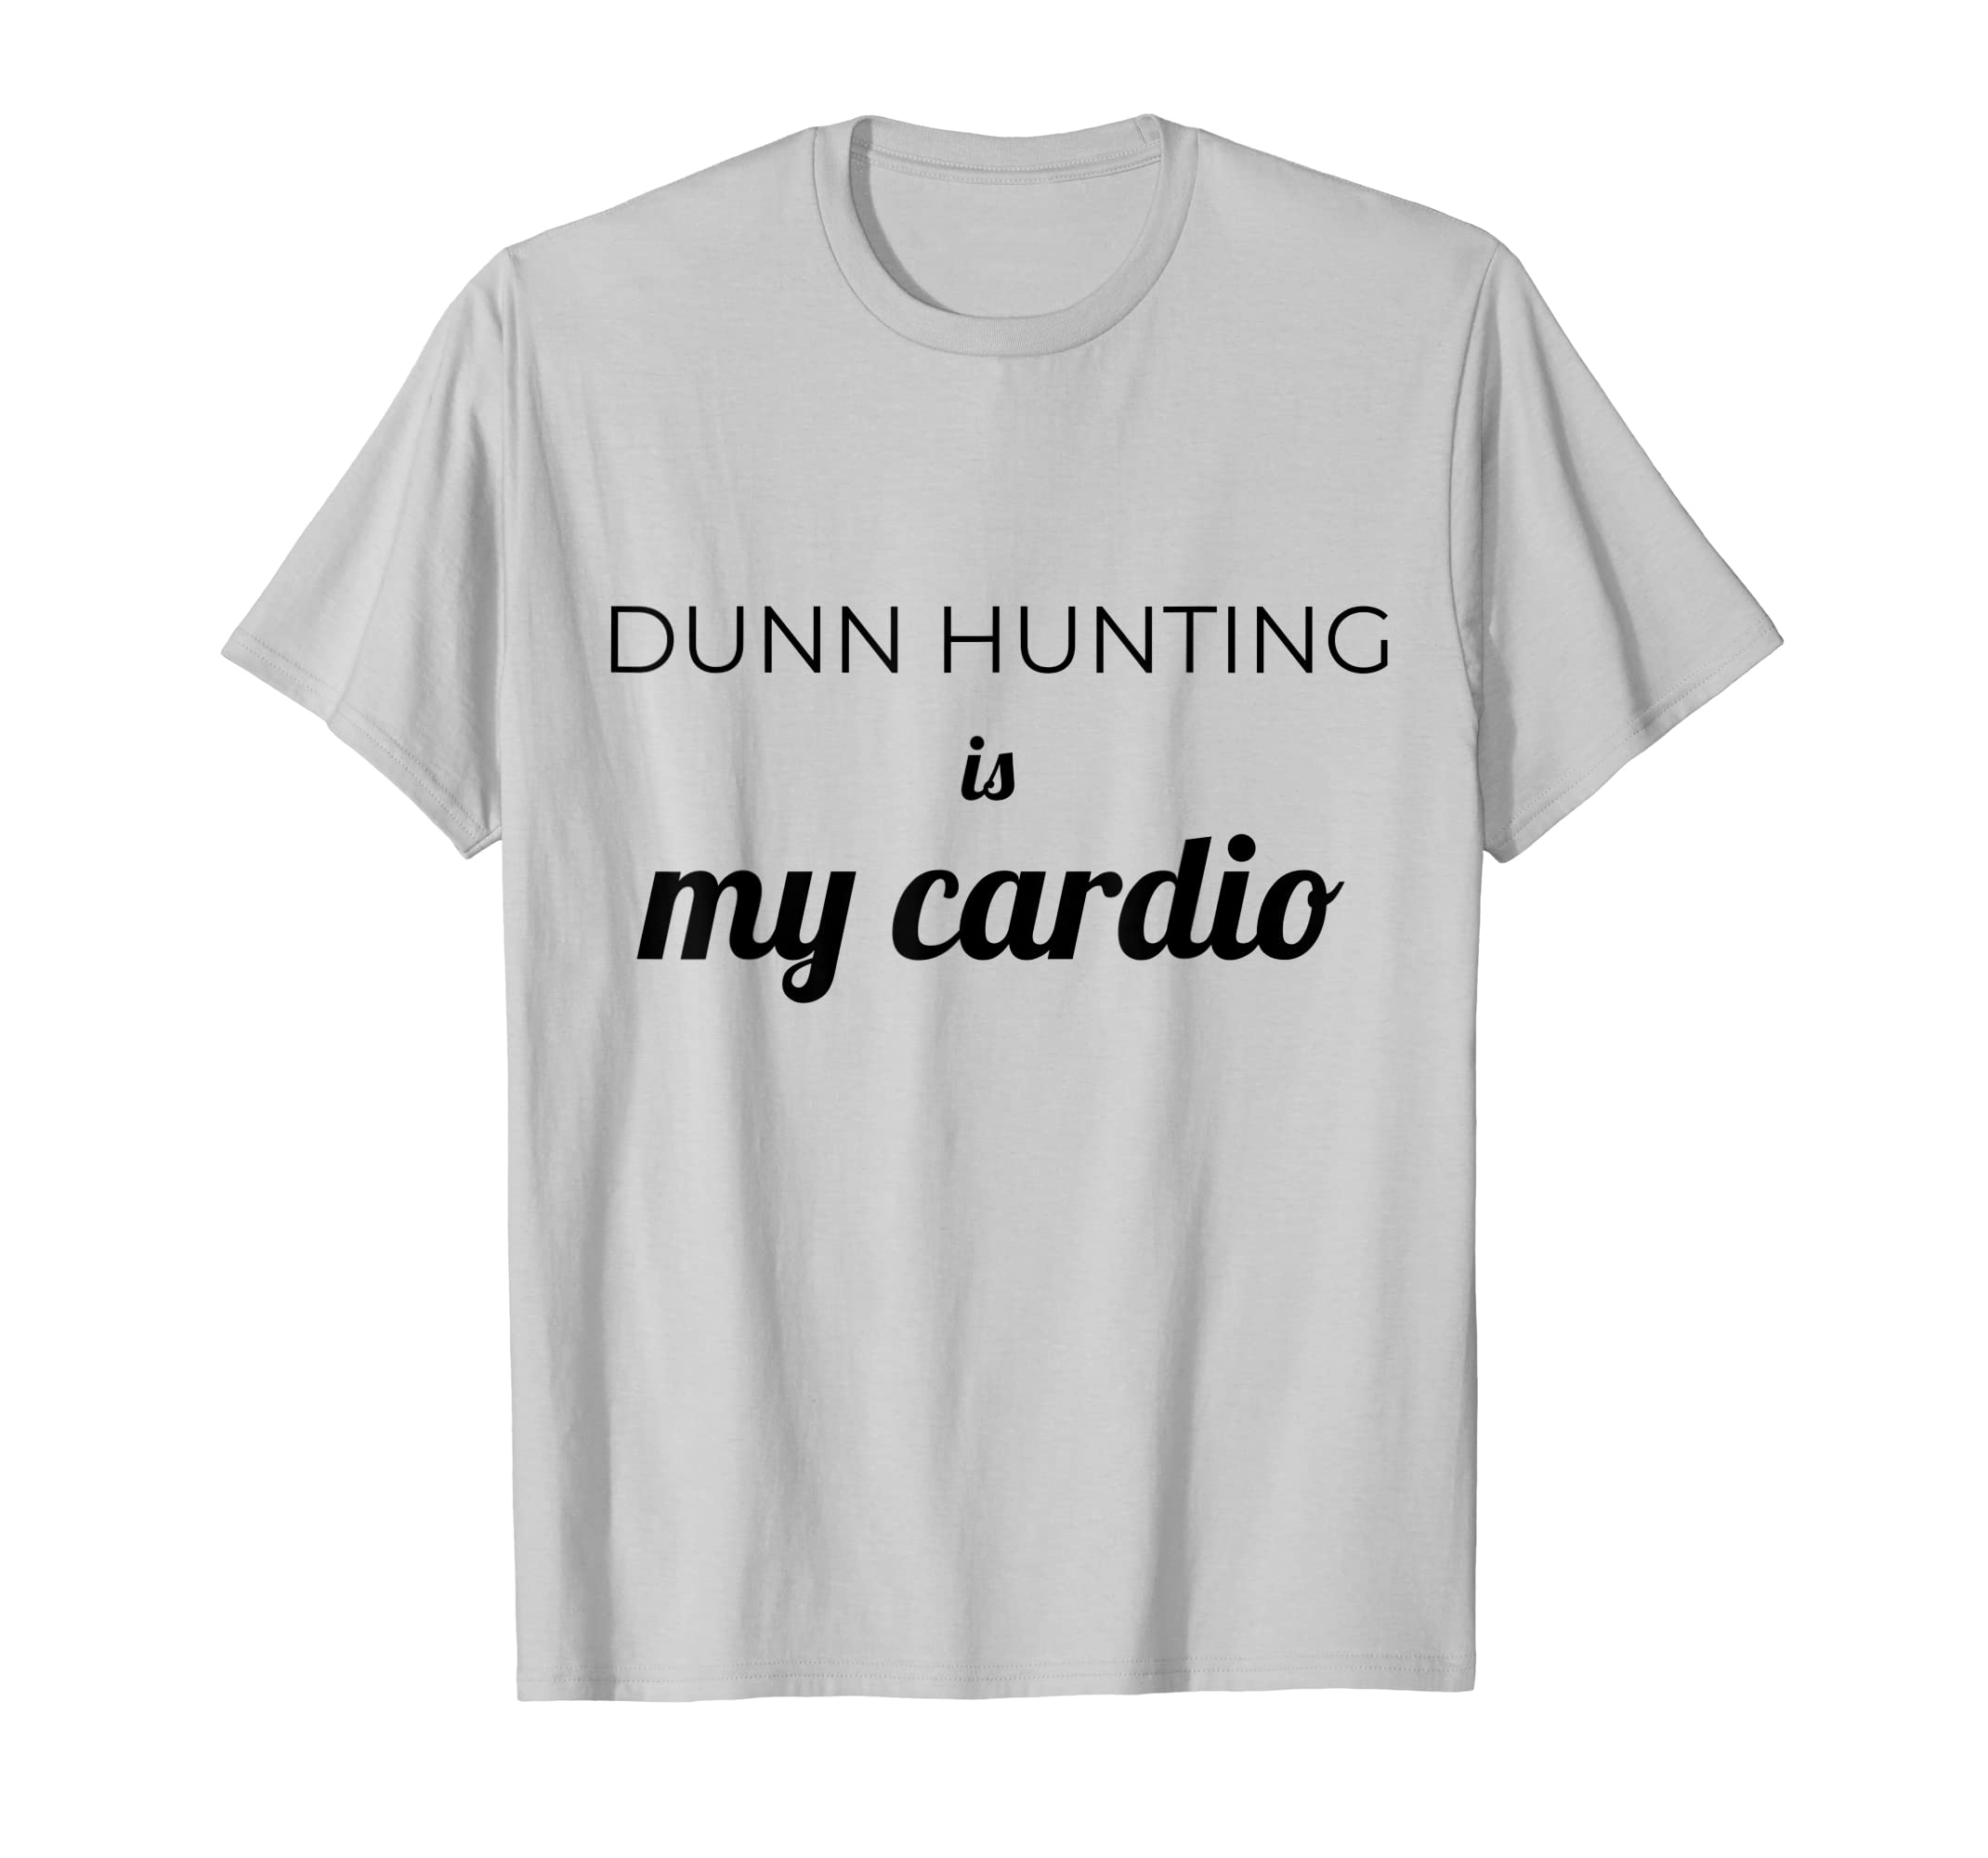 f8f25d8b013f8 Amazon.com: Dunn Hunting is my cardio t-shirt collector of Rae pottery:  Clothing